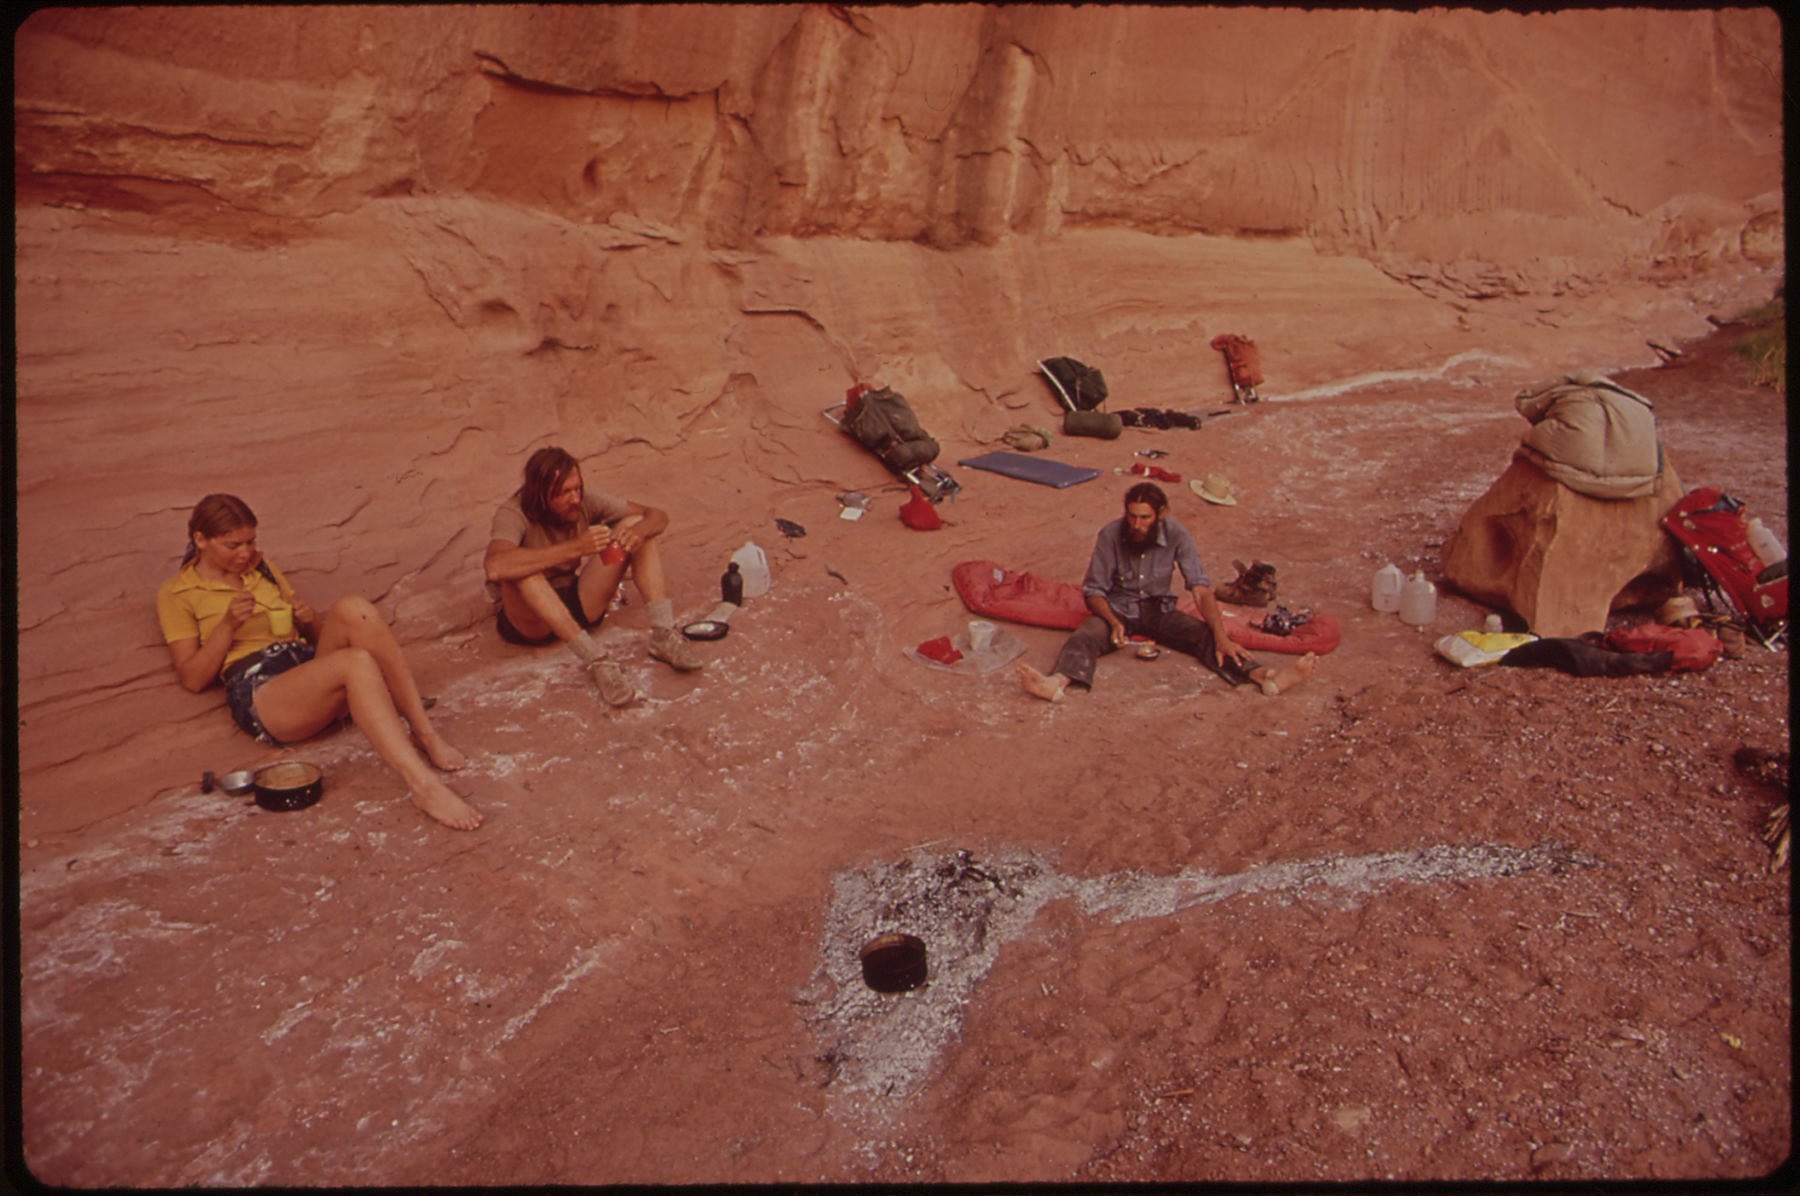 a group of campers sit in a canyon